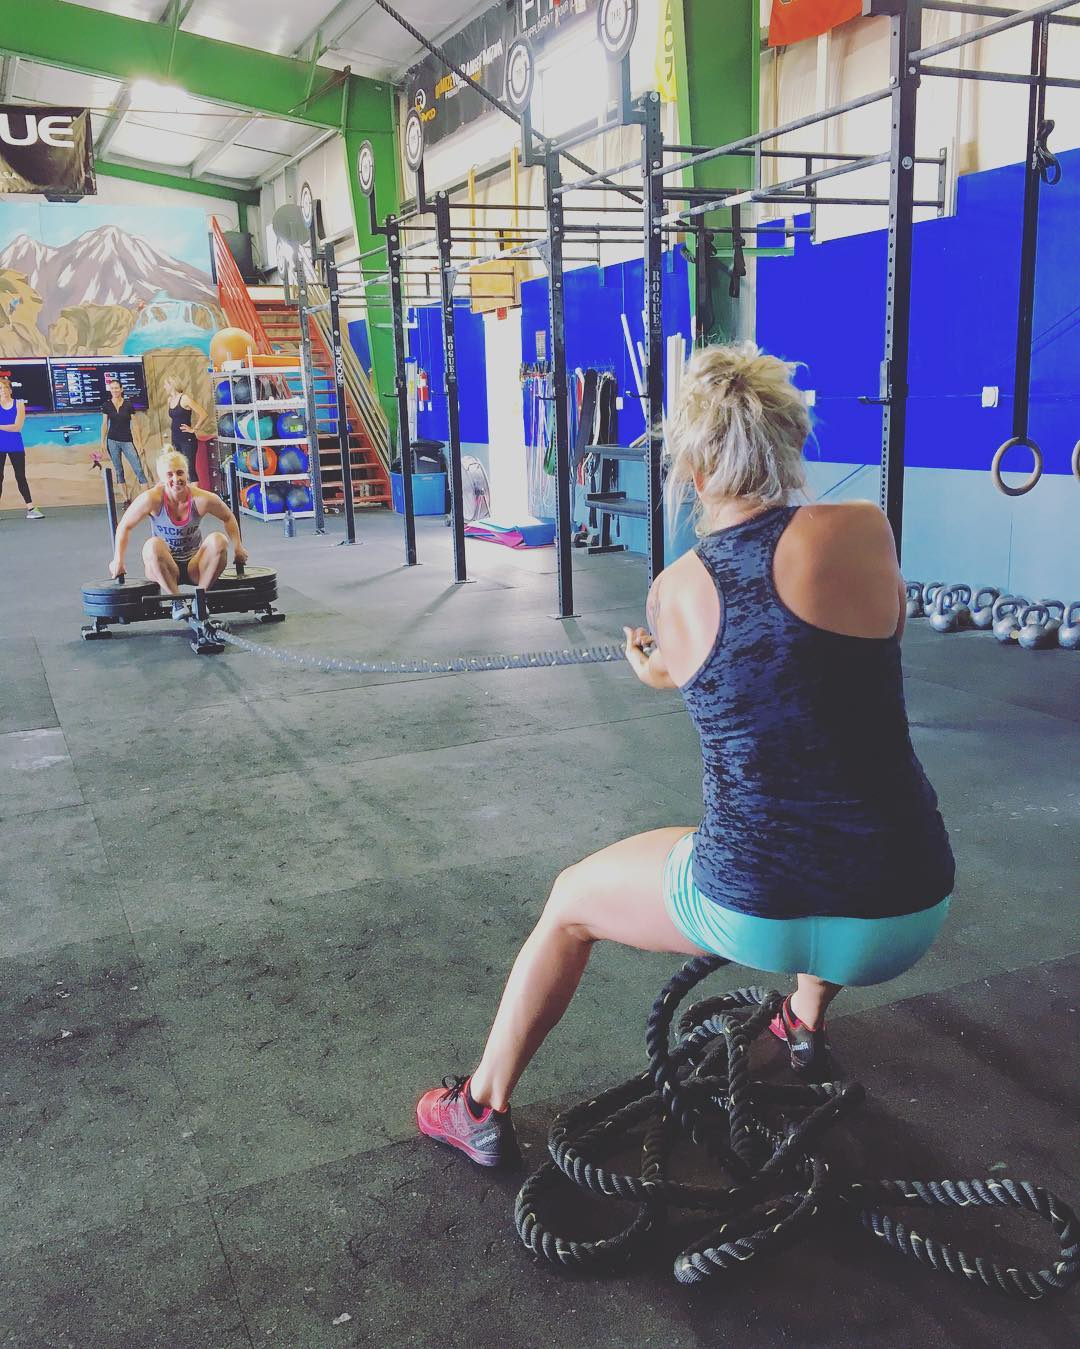 FRI-YAY! @caseyjorden16 is pulling for the weekend!  #teamwork #type44 #crossfit #reebok #sledpulls #inbend #fitness